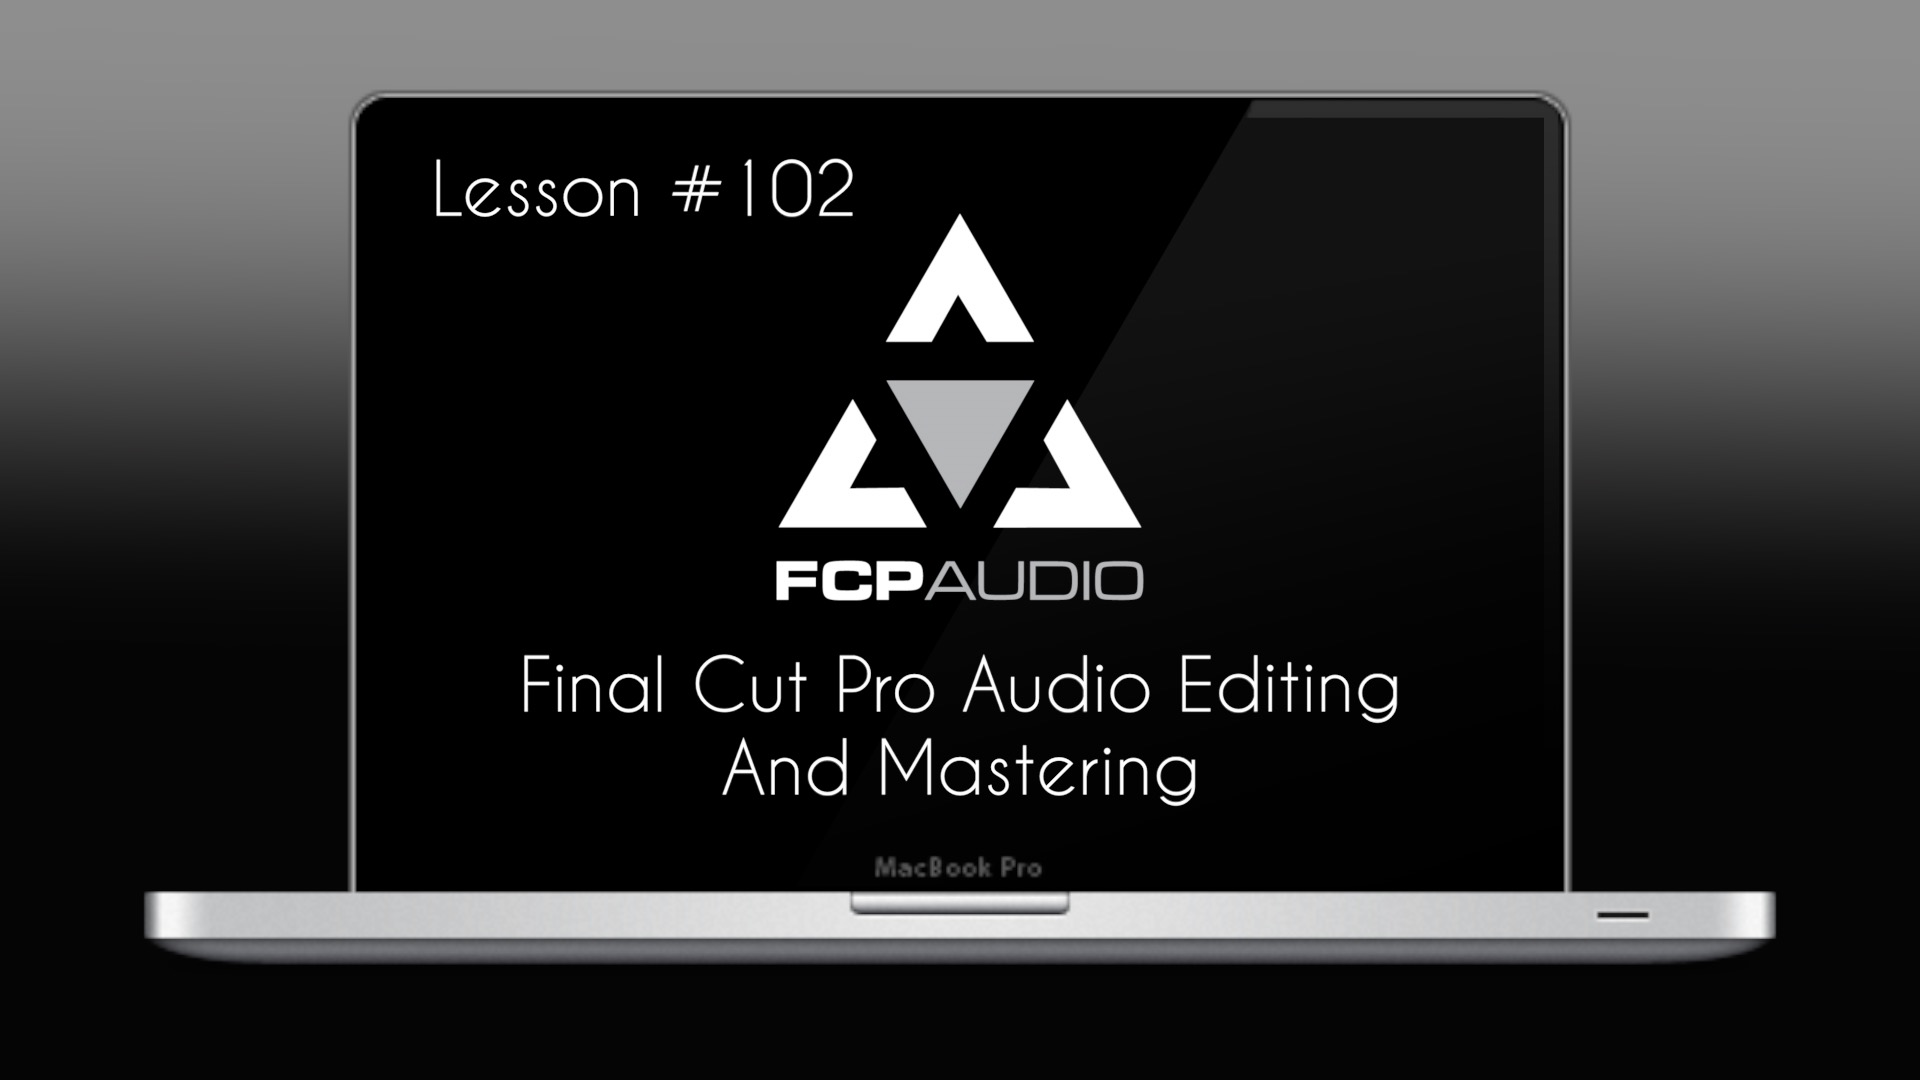 Final Cut Pro Audio Editing